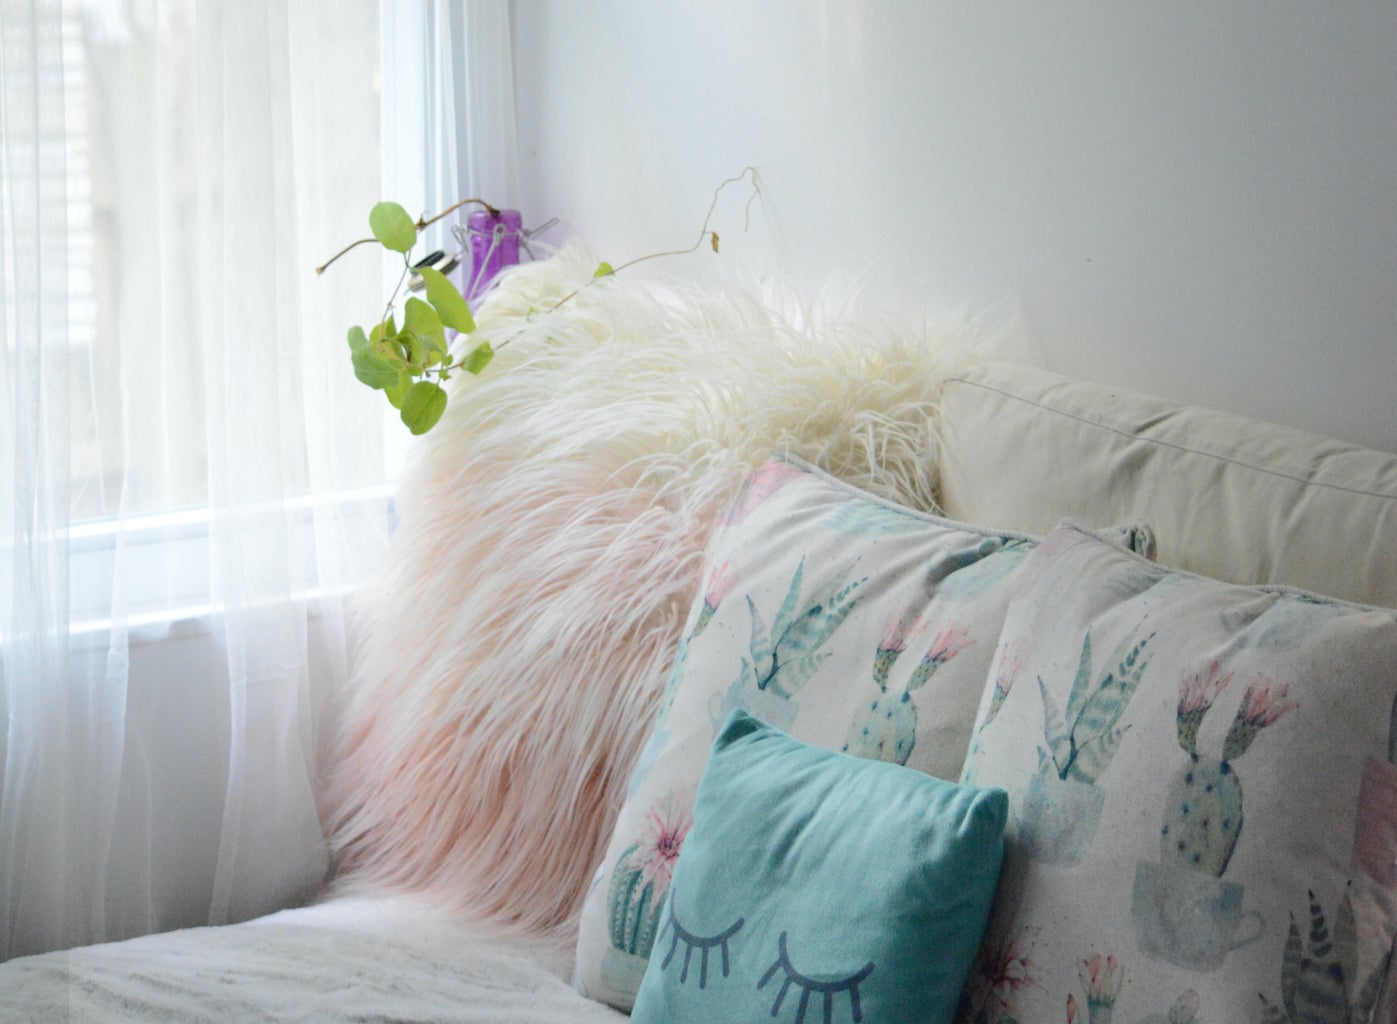 pink and white fluffy pillows on a white bed